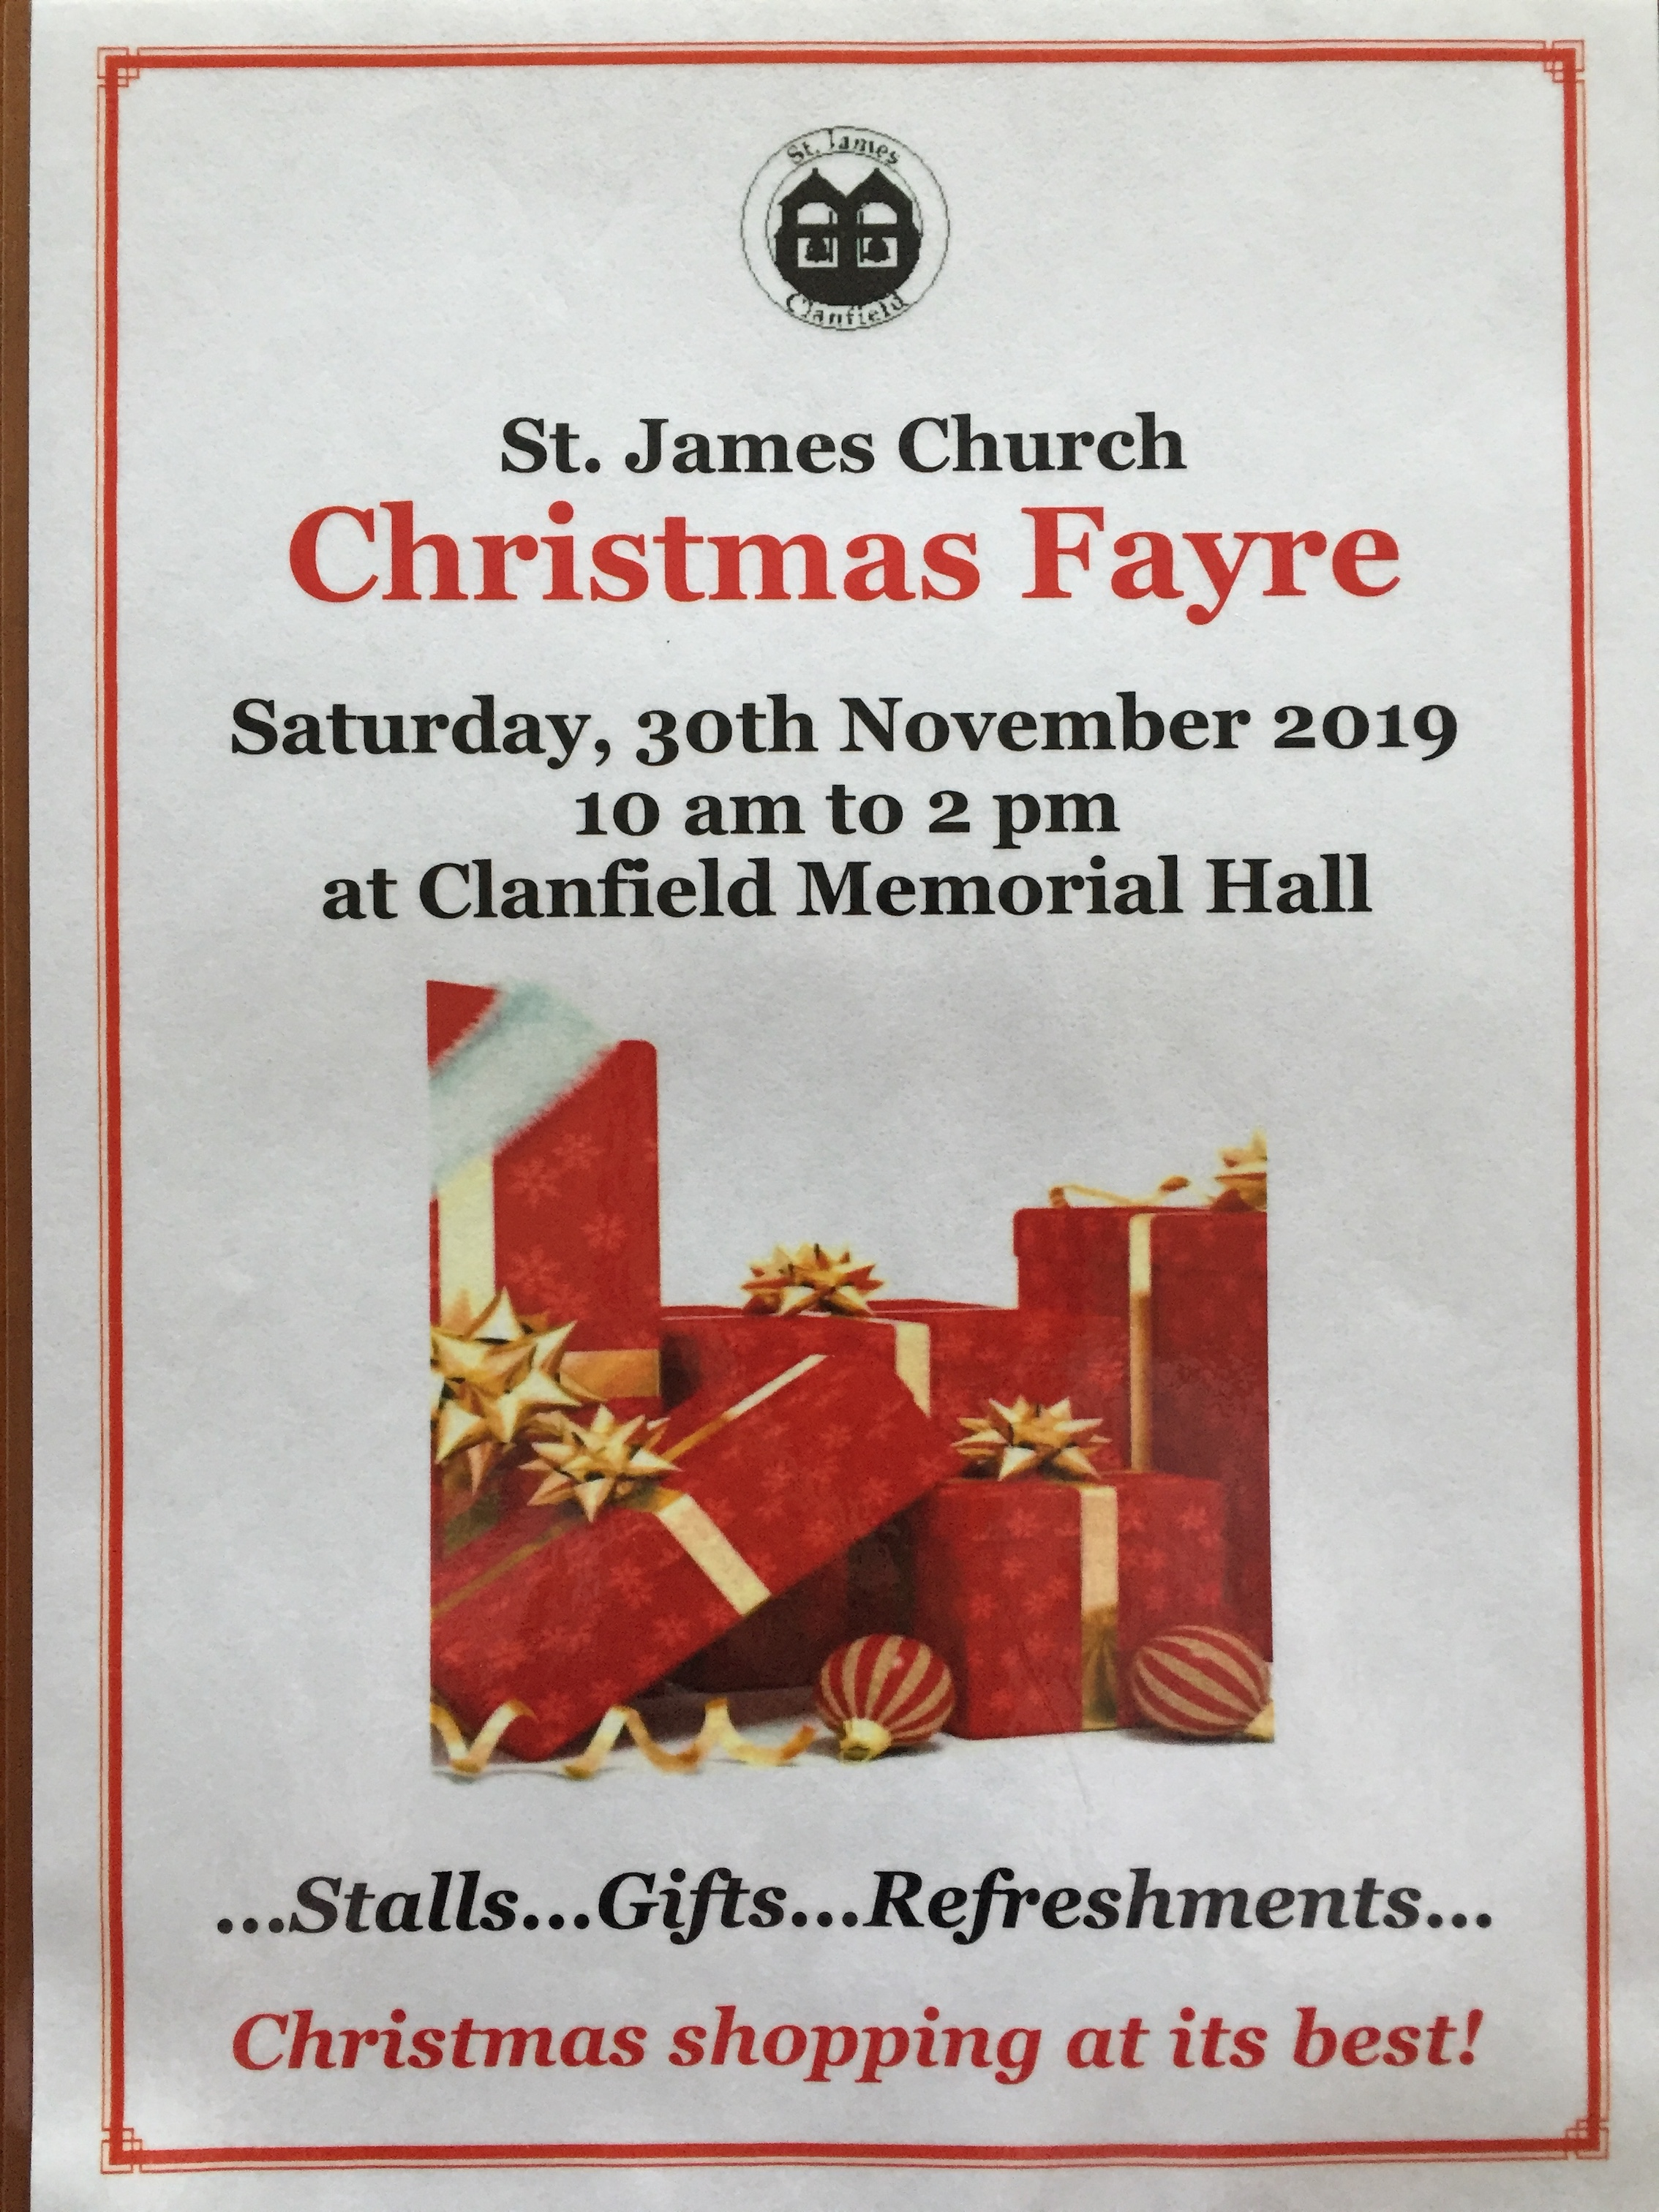 St. James Church Christmas Fayre